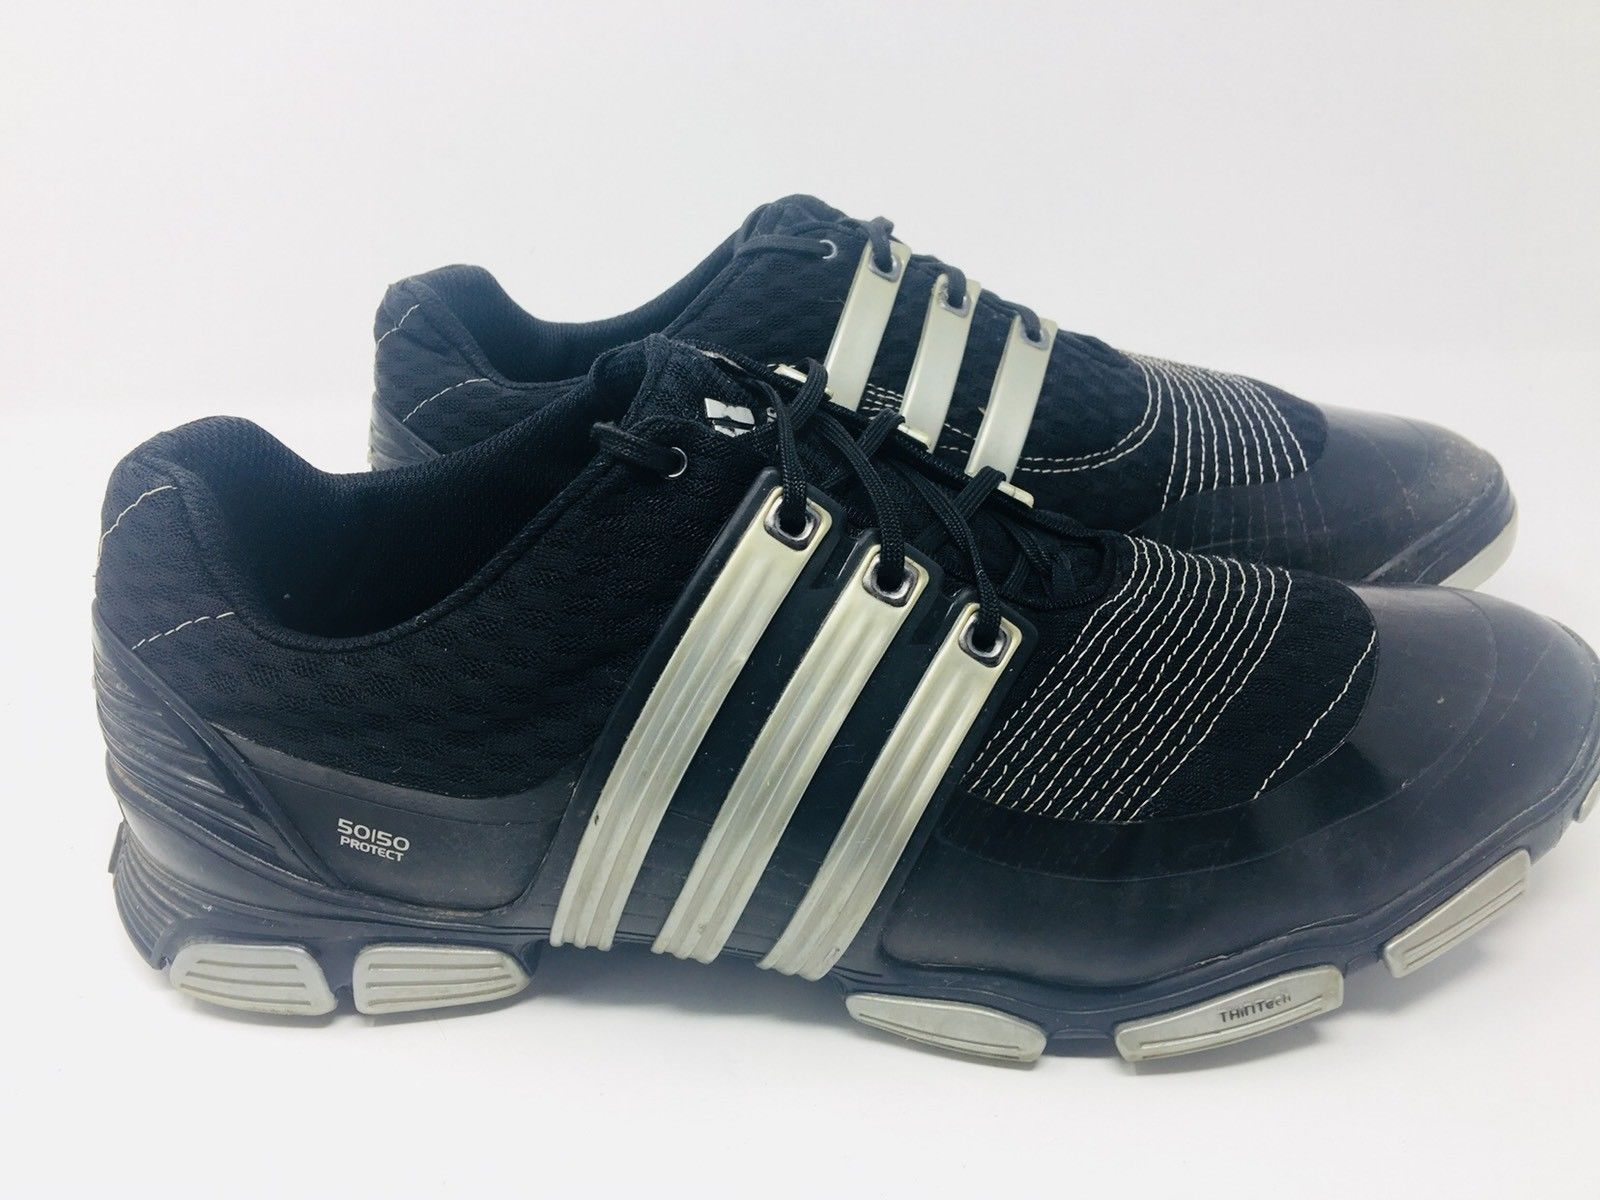 new style d0cd3 b3180 S l1600. S l1600. Adidas Tour 360 4.0 Black Leather Lace Up Golf Shoes Cleats  Men s Size 12 M ...